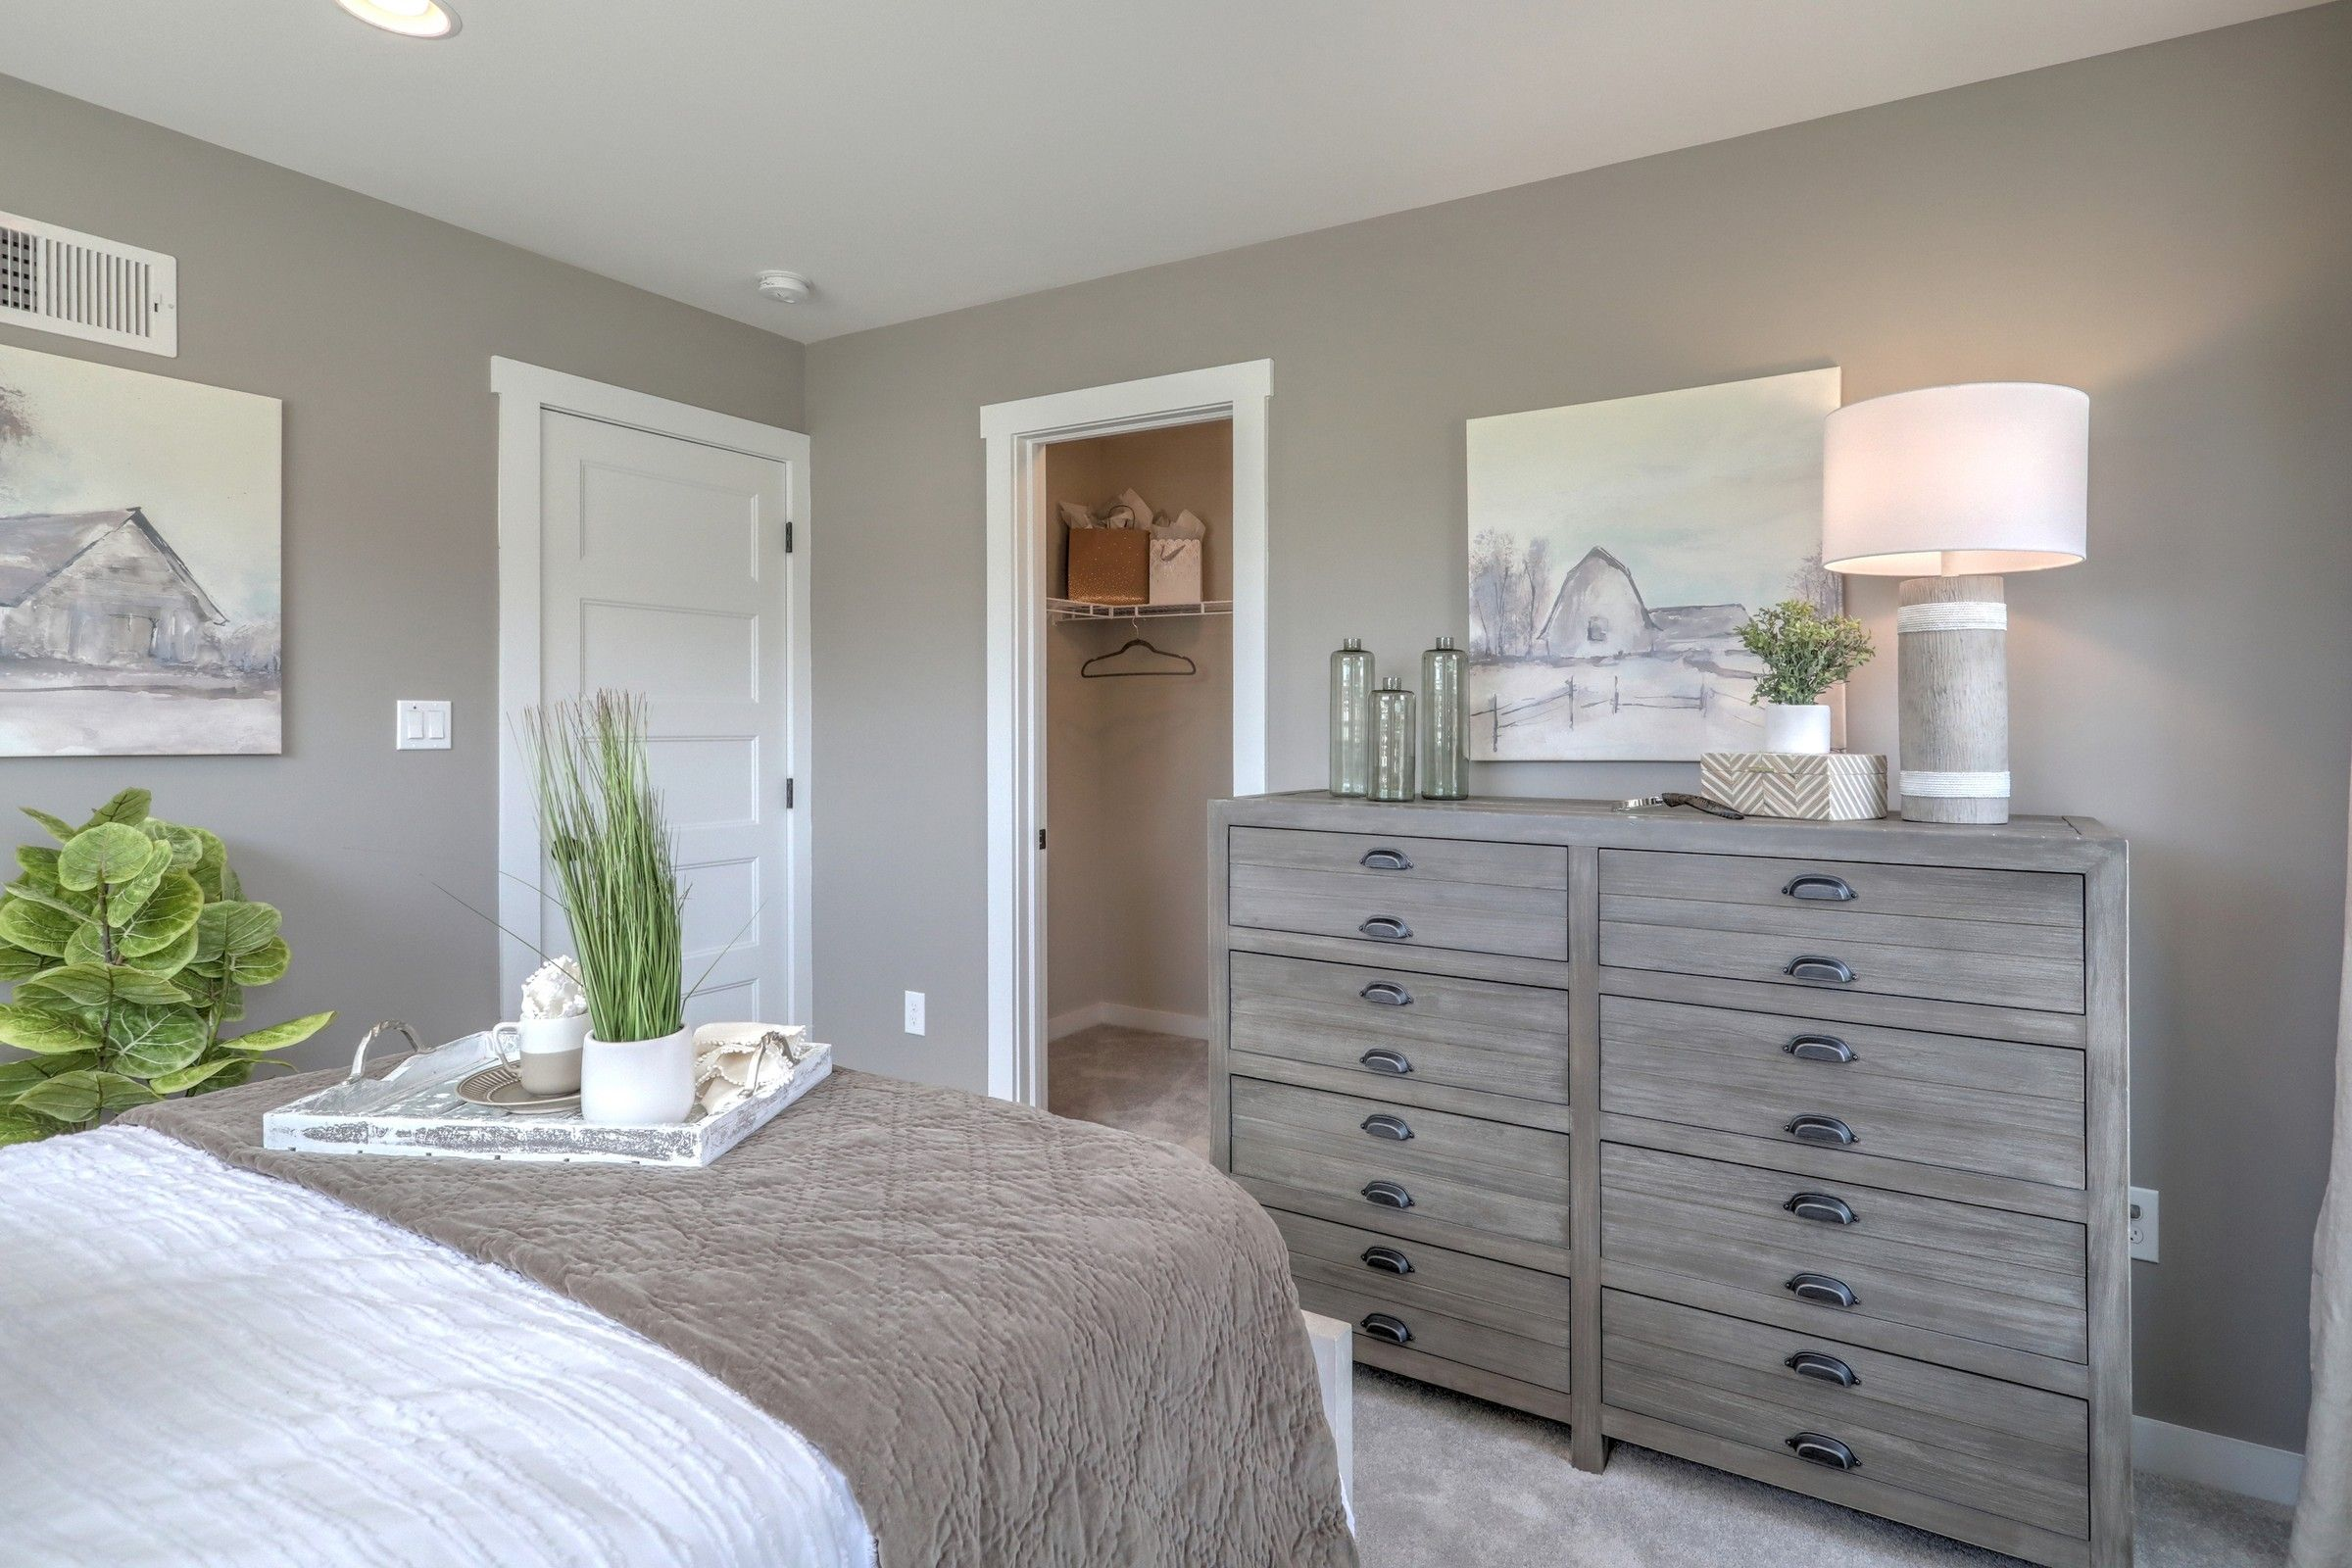 Bedroom featured in the Parker Normandy By Keystone Custom Homes in Lancaster, PA